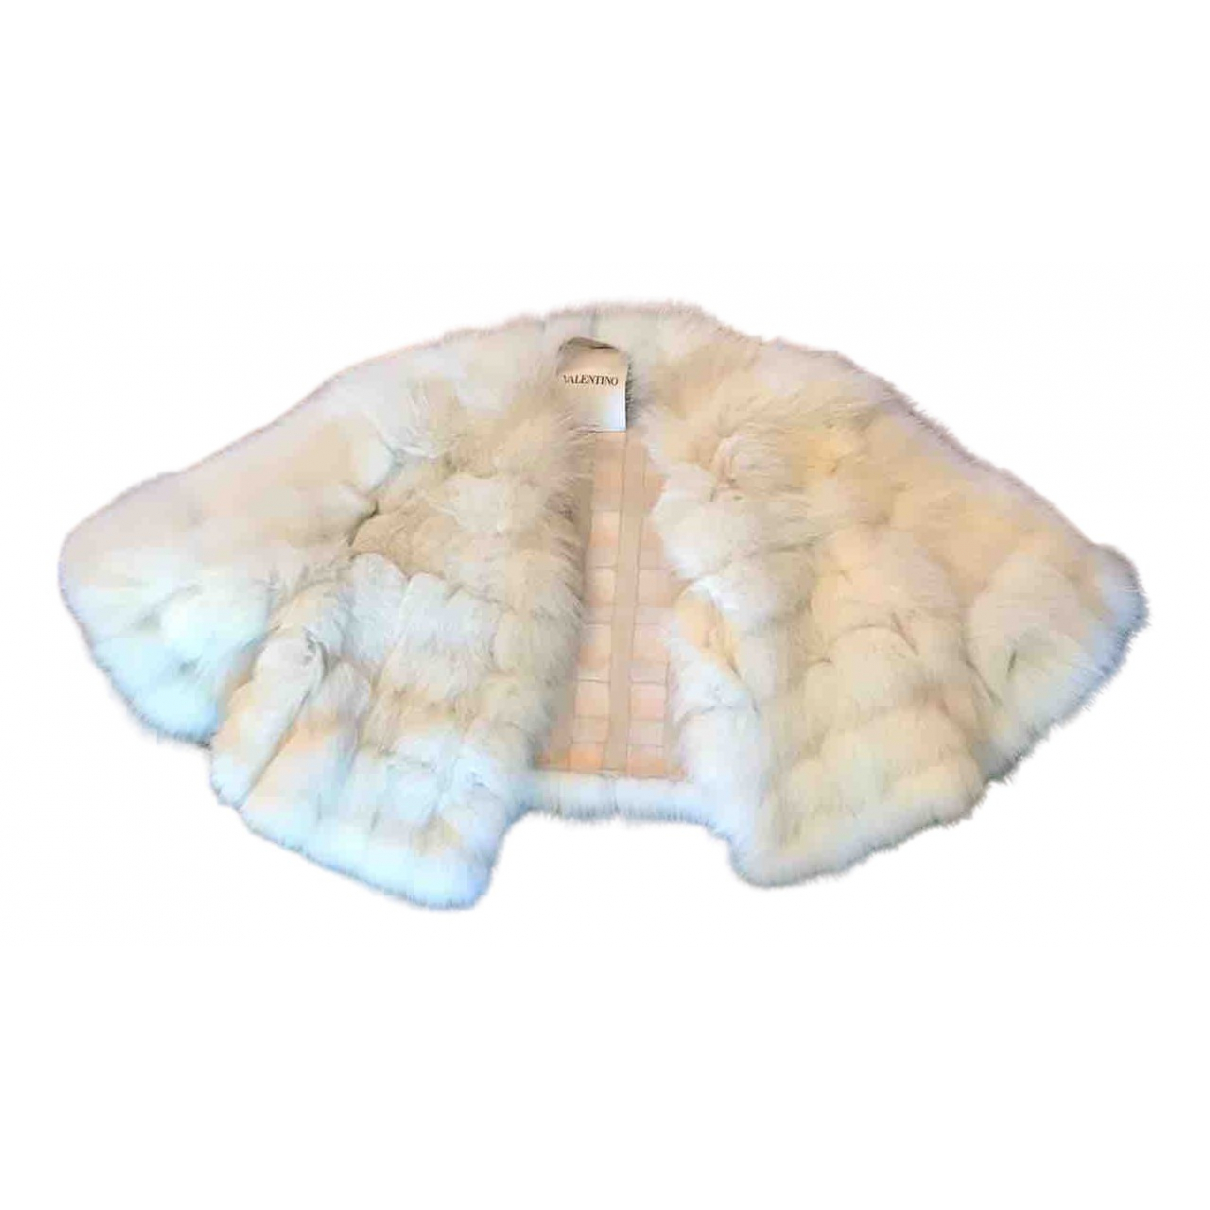 Valentino Garavani \N White Fox jacket for Women 38 IT